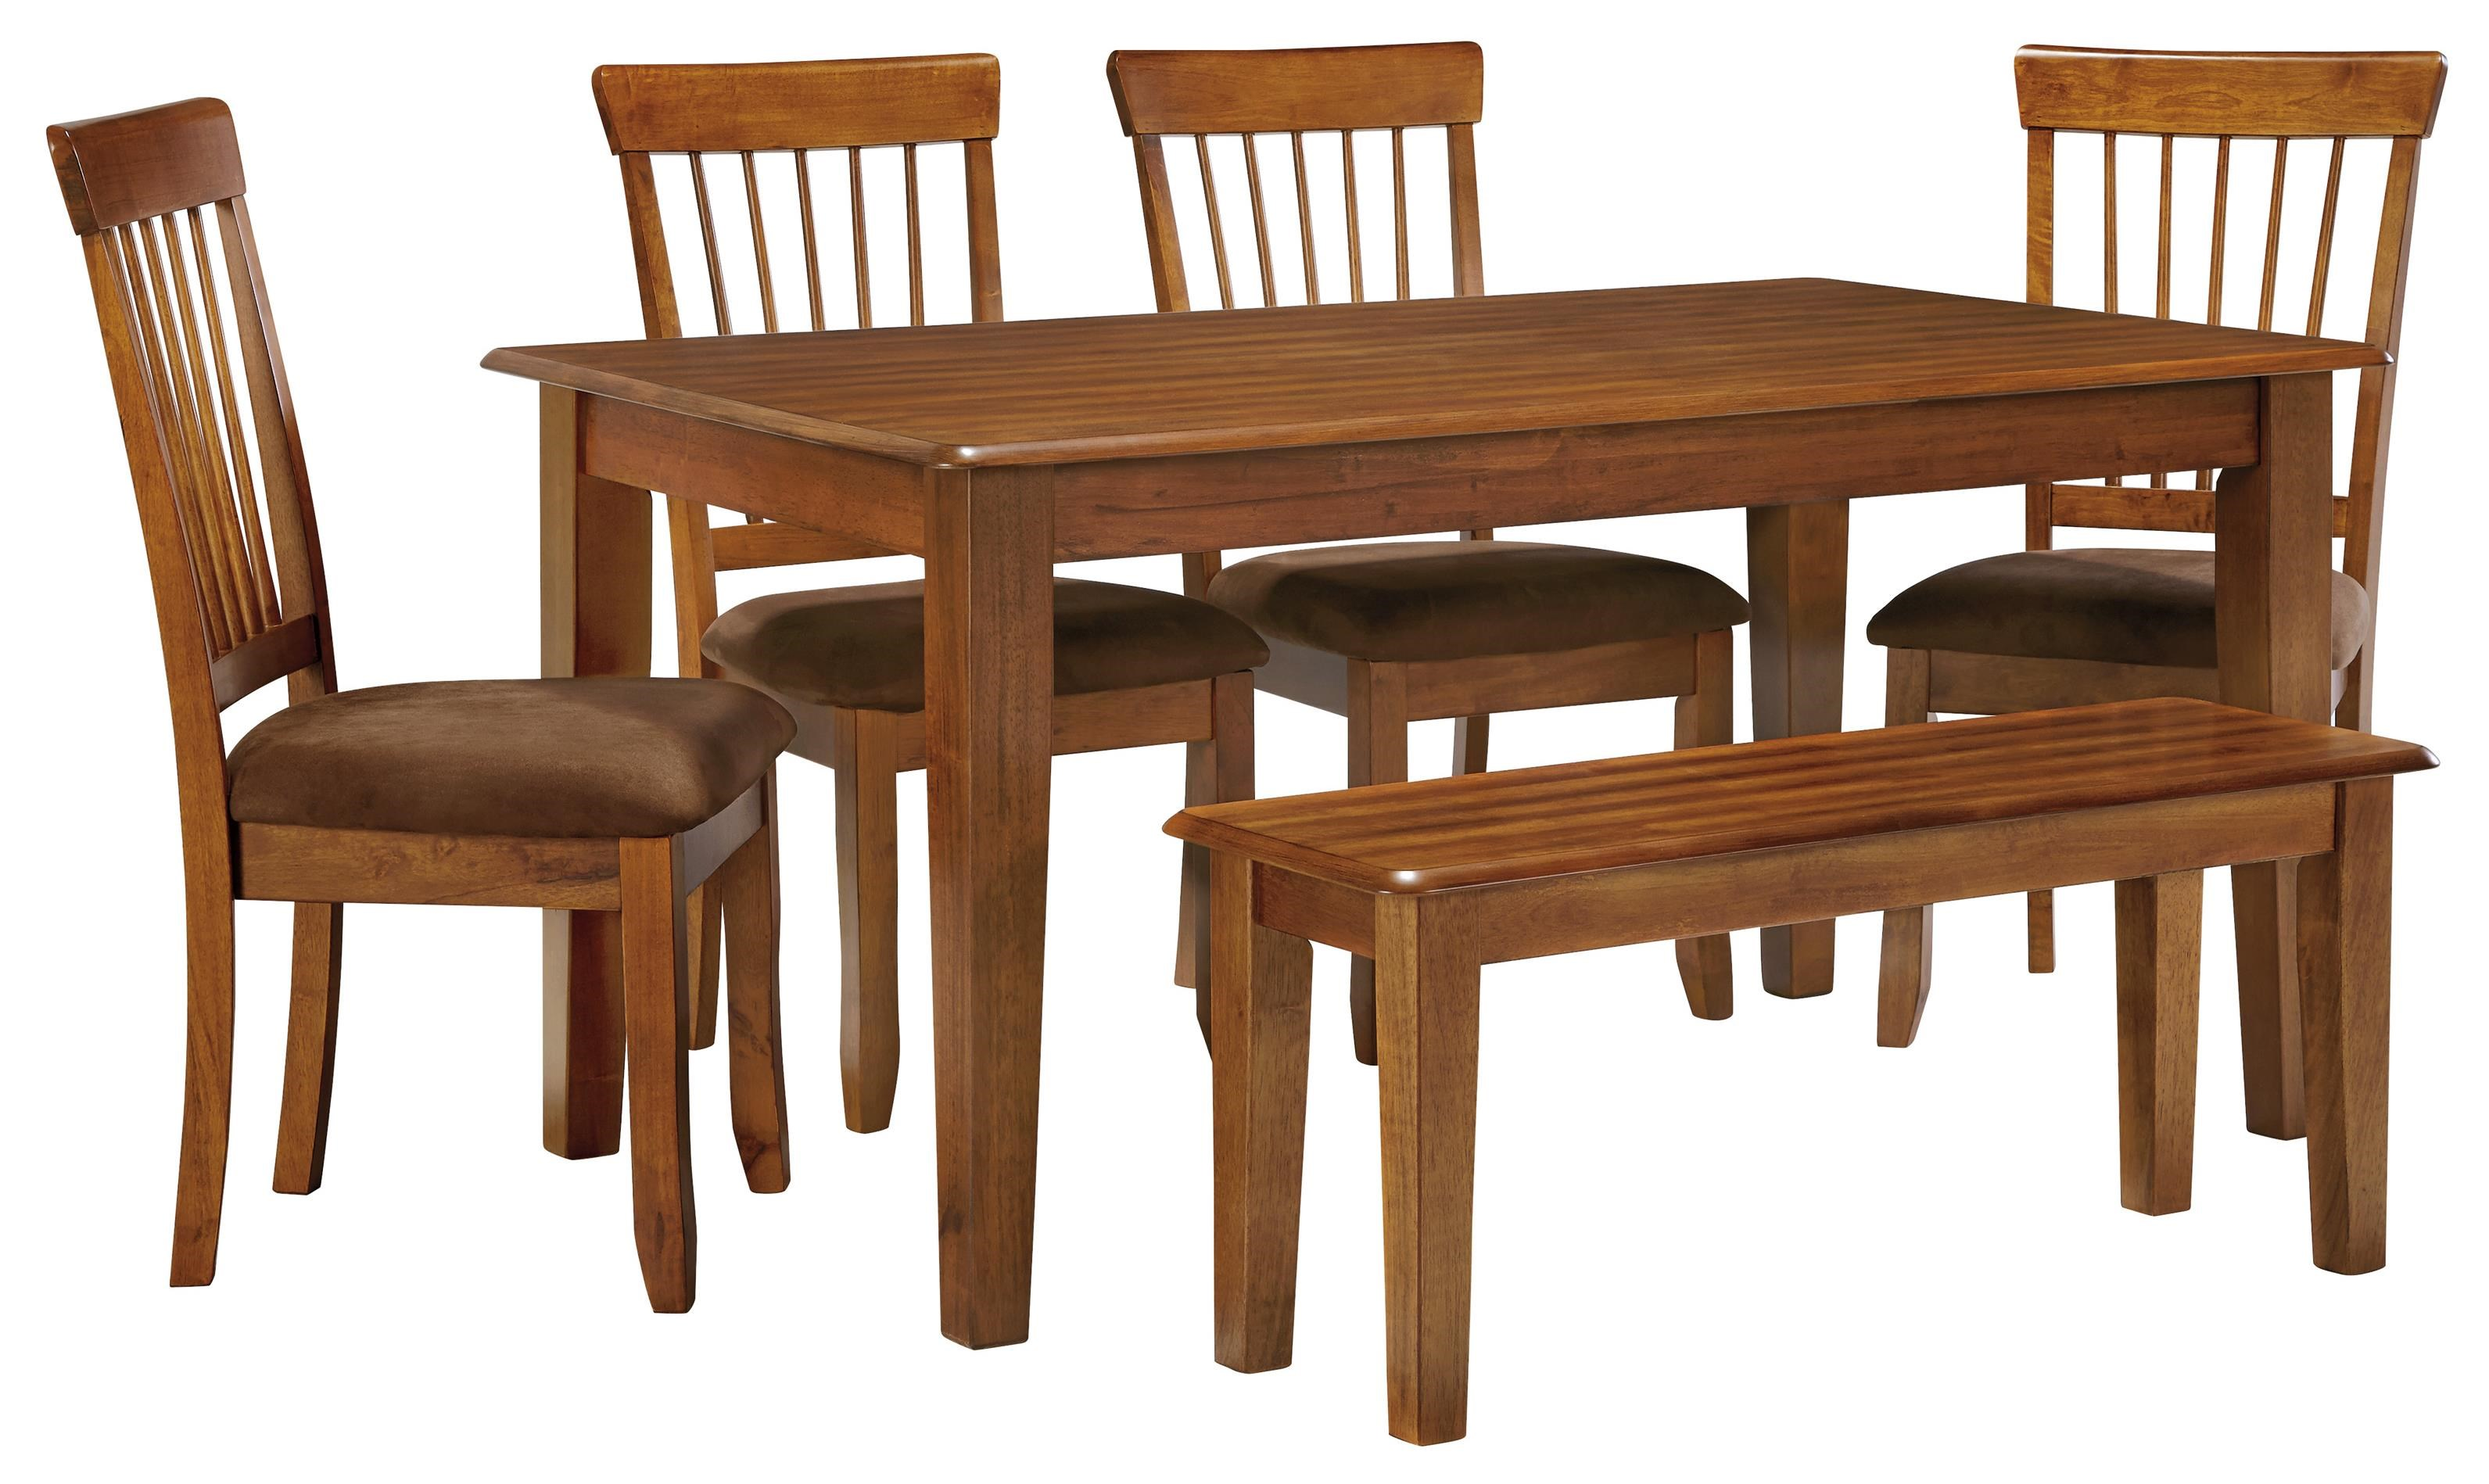 Ashley Furniture Berringer 36 X 60 Table With 4 Chairs